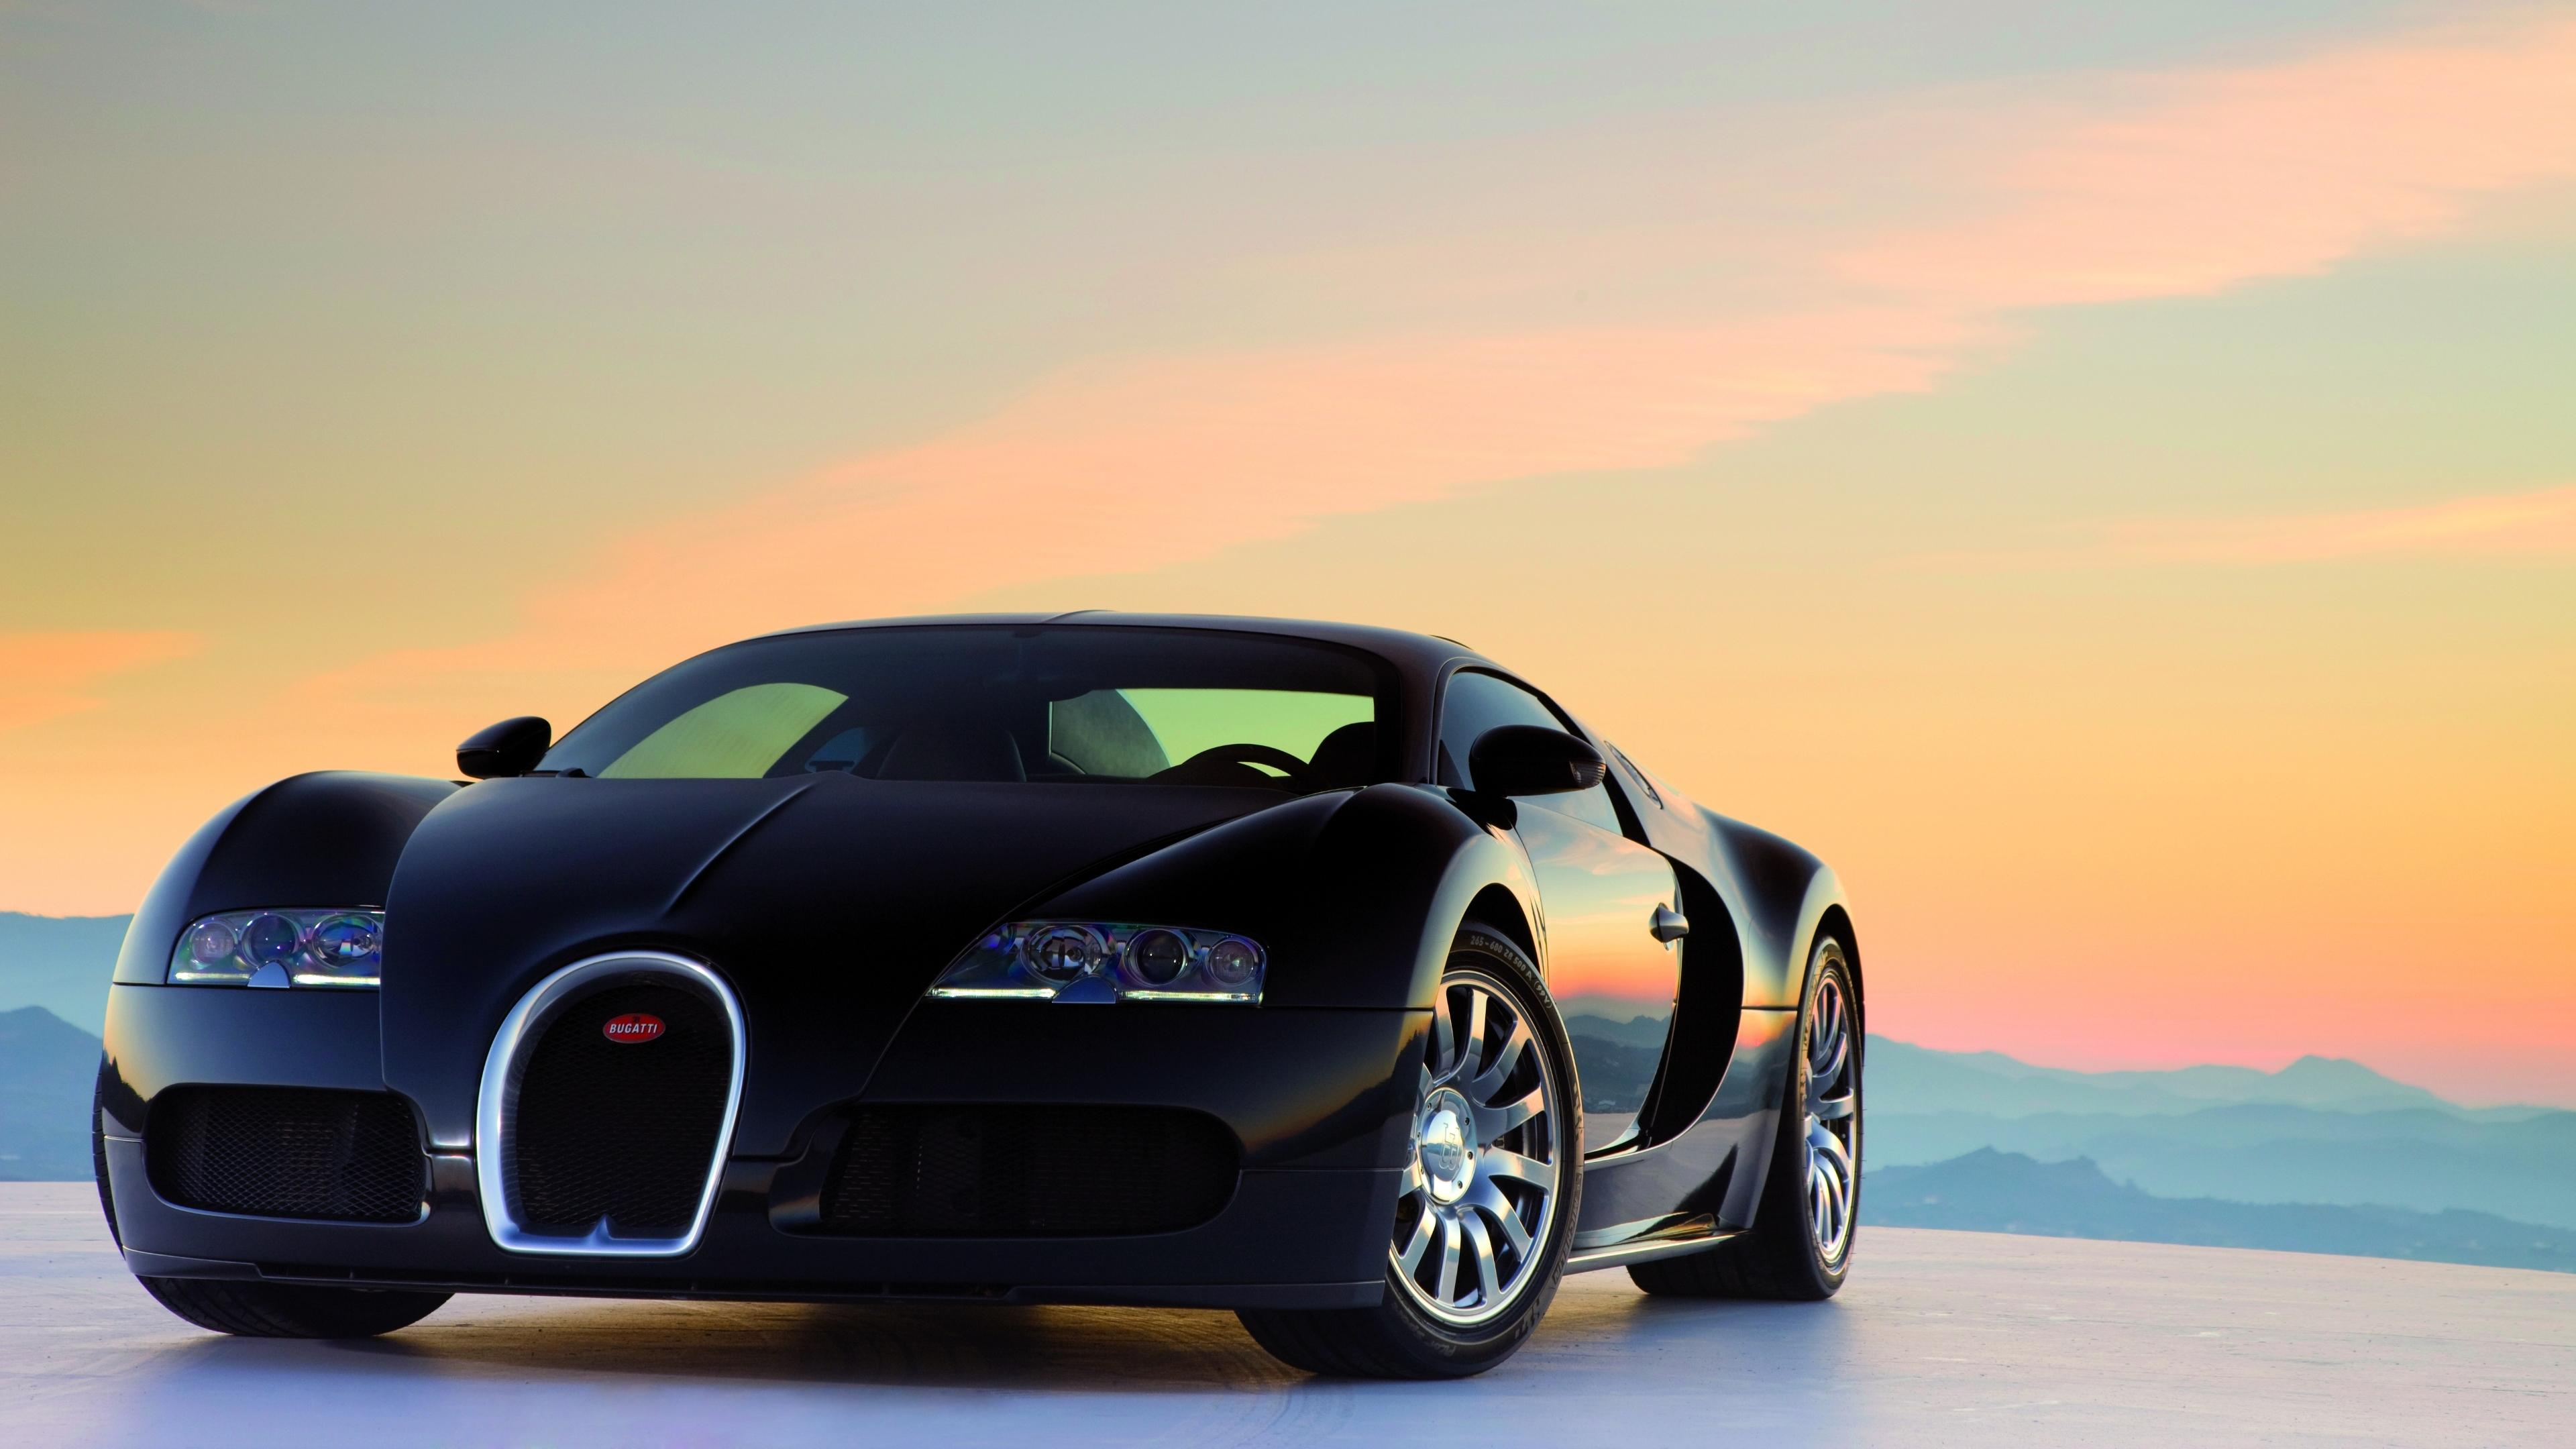 Cars Hd Wallpapers Posted By Ryan Johnson